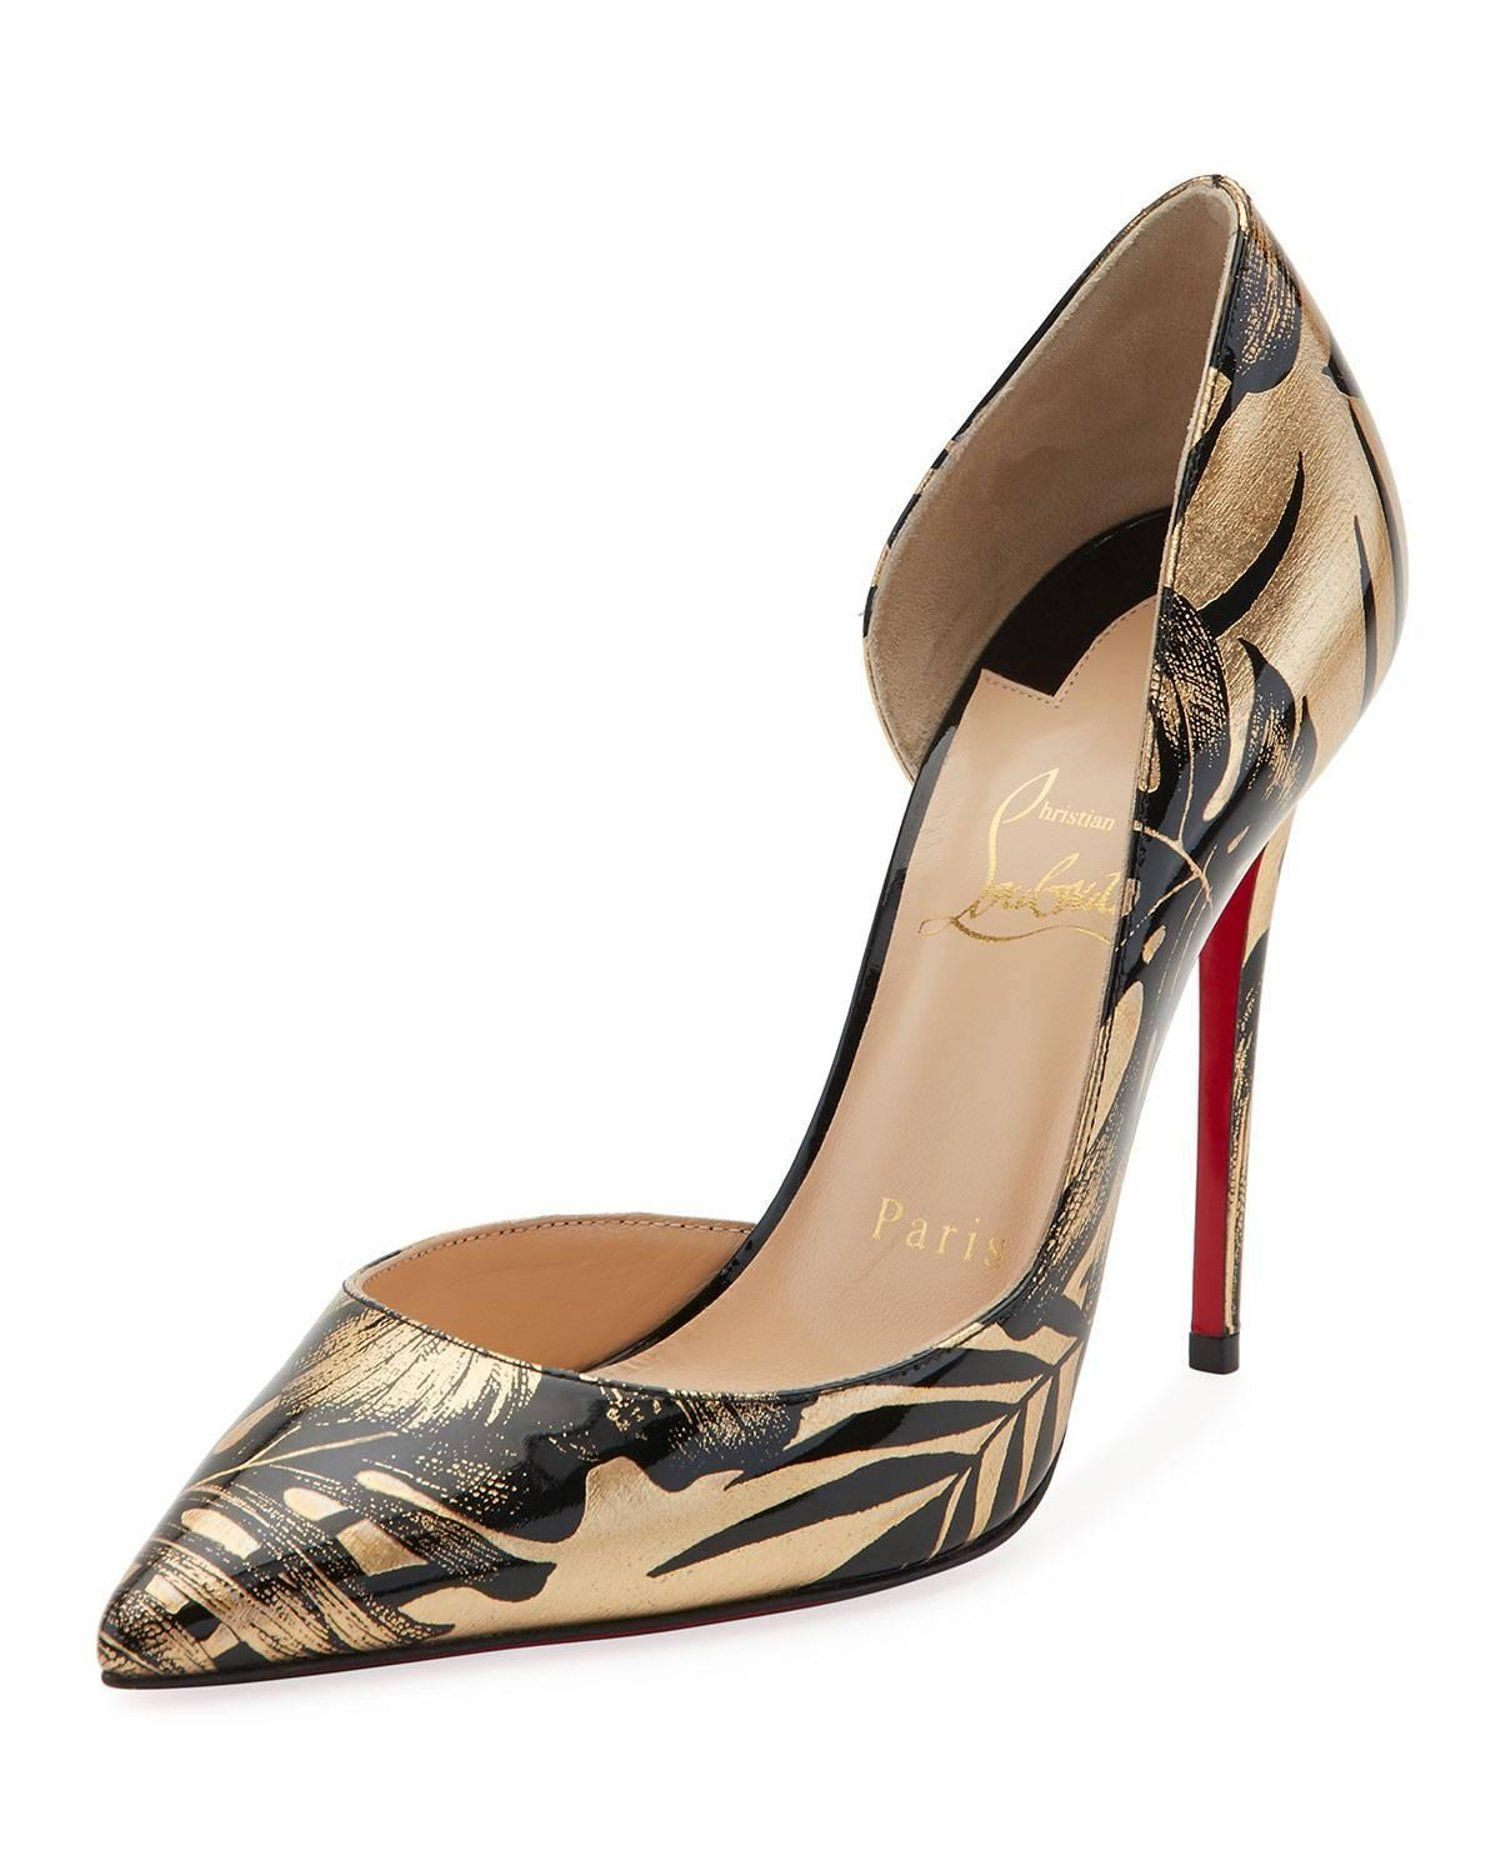 e1b261eb1772 Christian Louboutin New Black Gold Patent D orsay Evening Sandals Heels in  Box